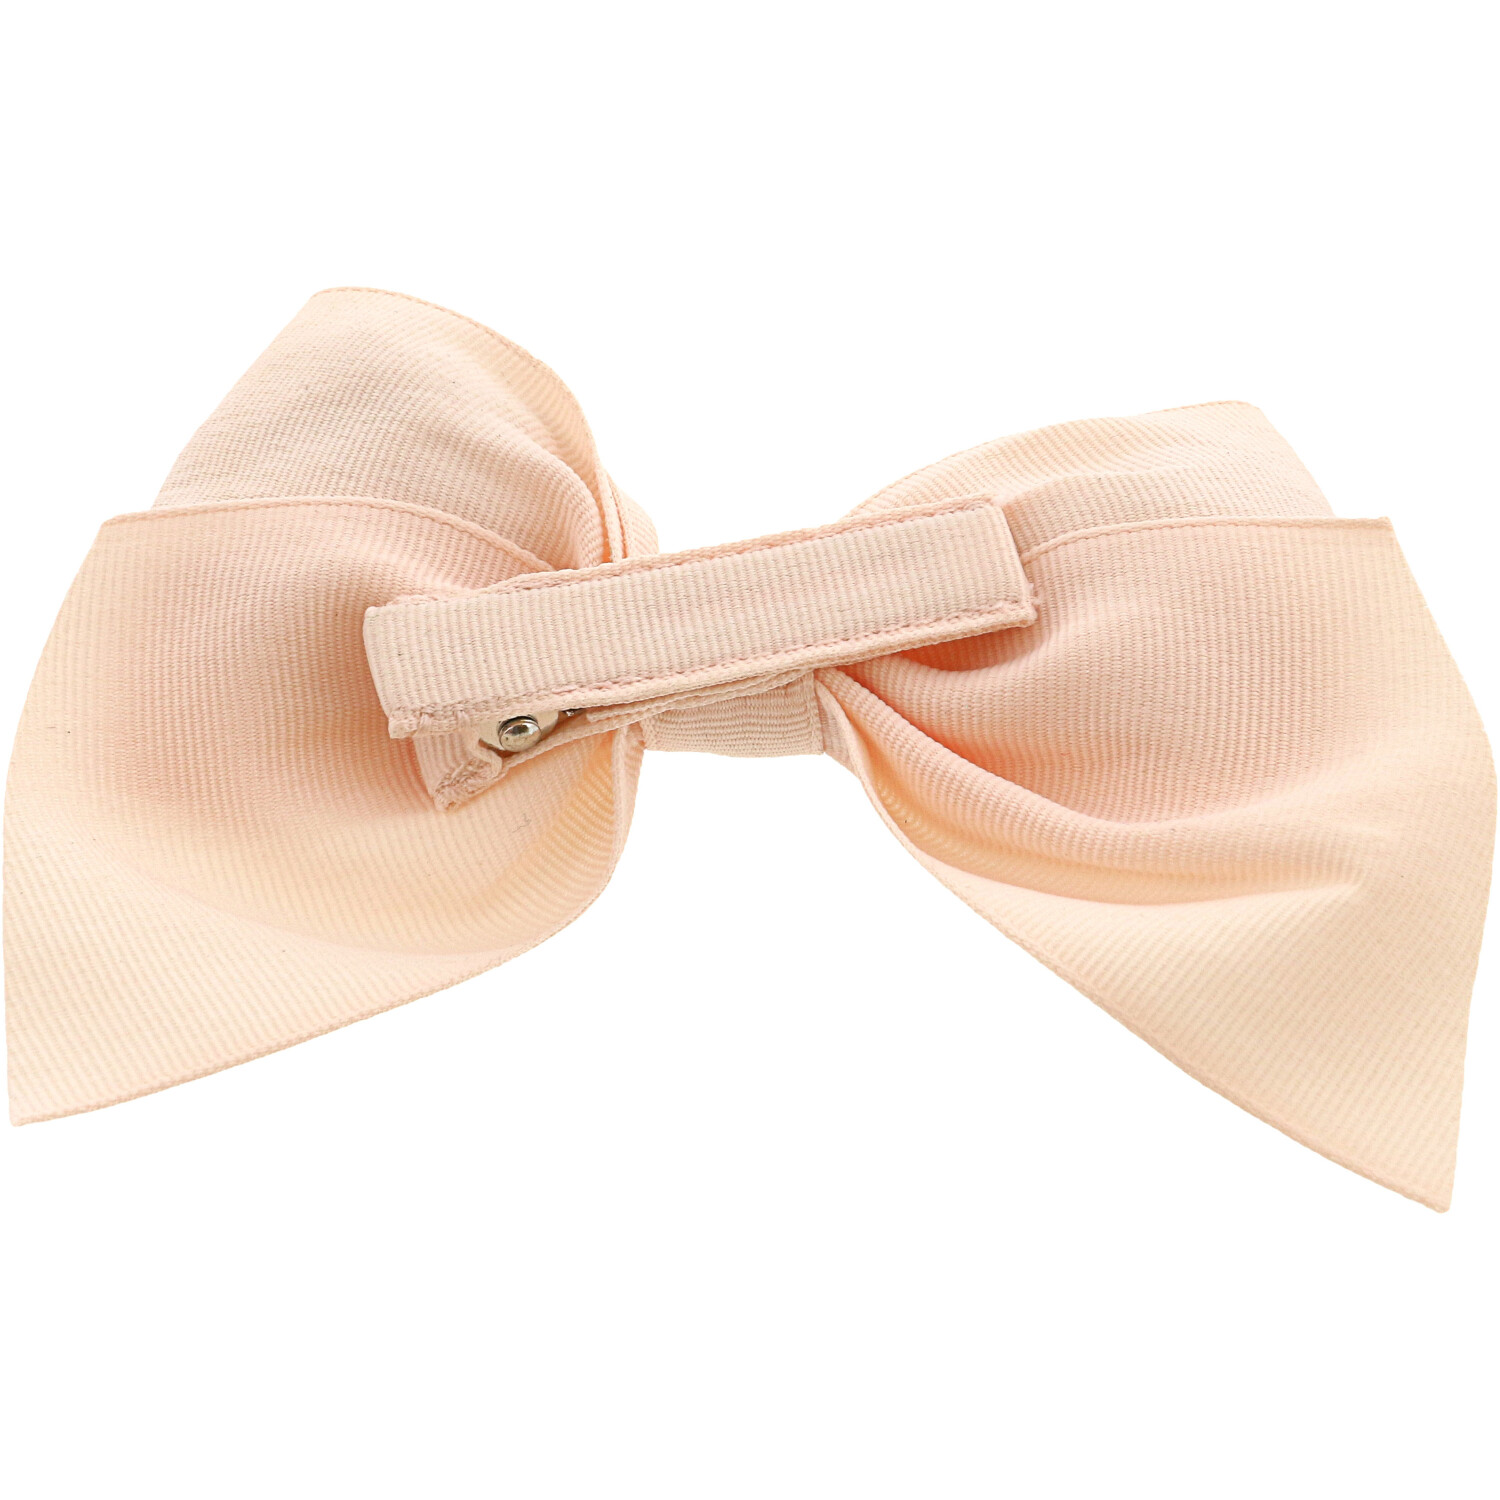 Janie And Jack Girl's Bow Barrette Hair Accessory - One Size - Blush